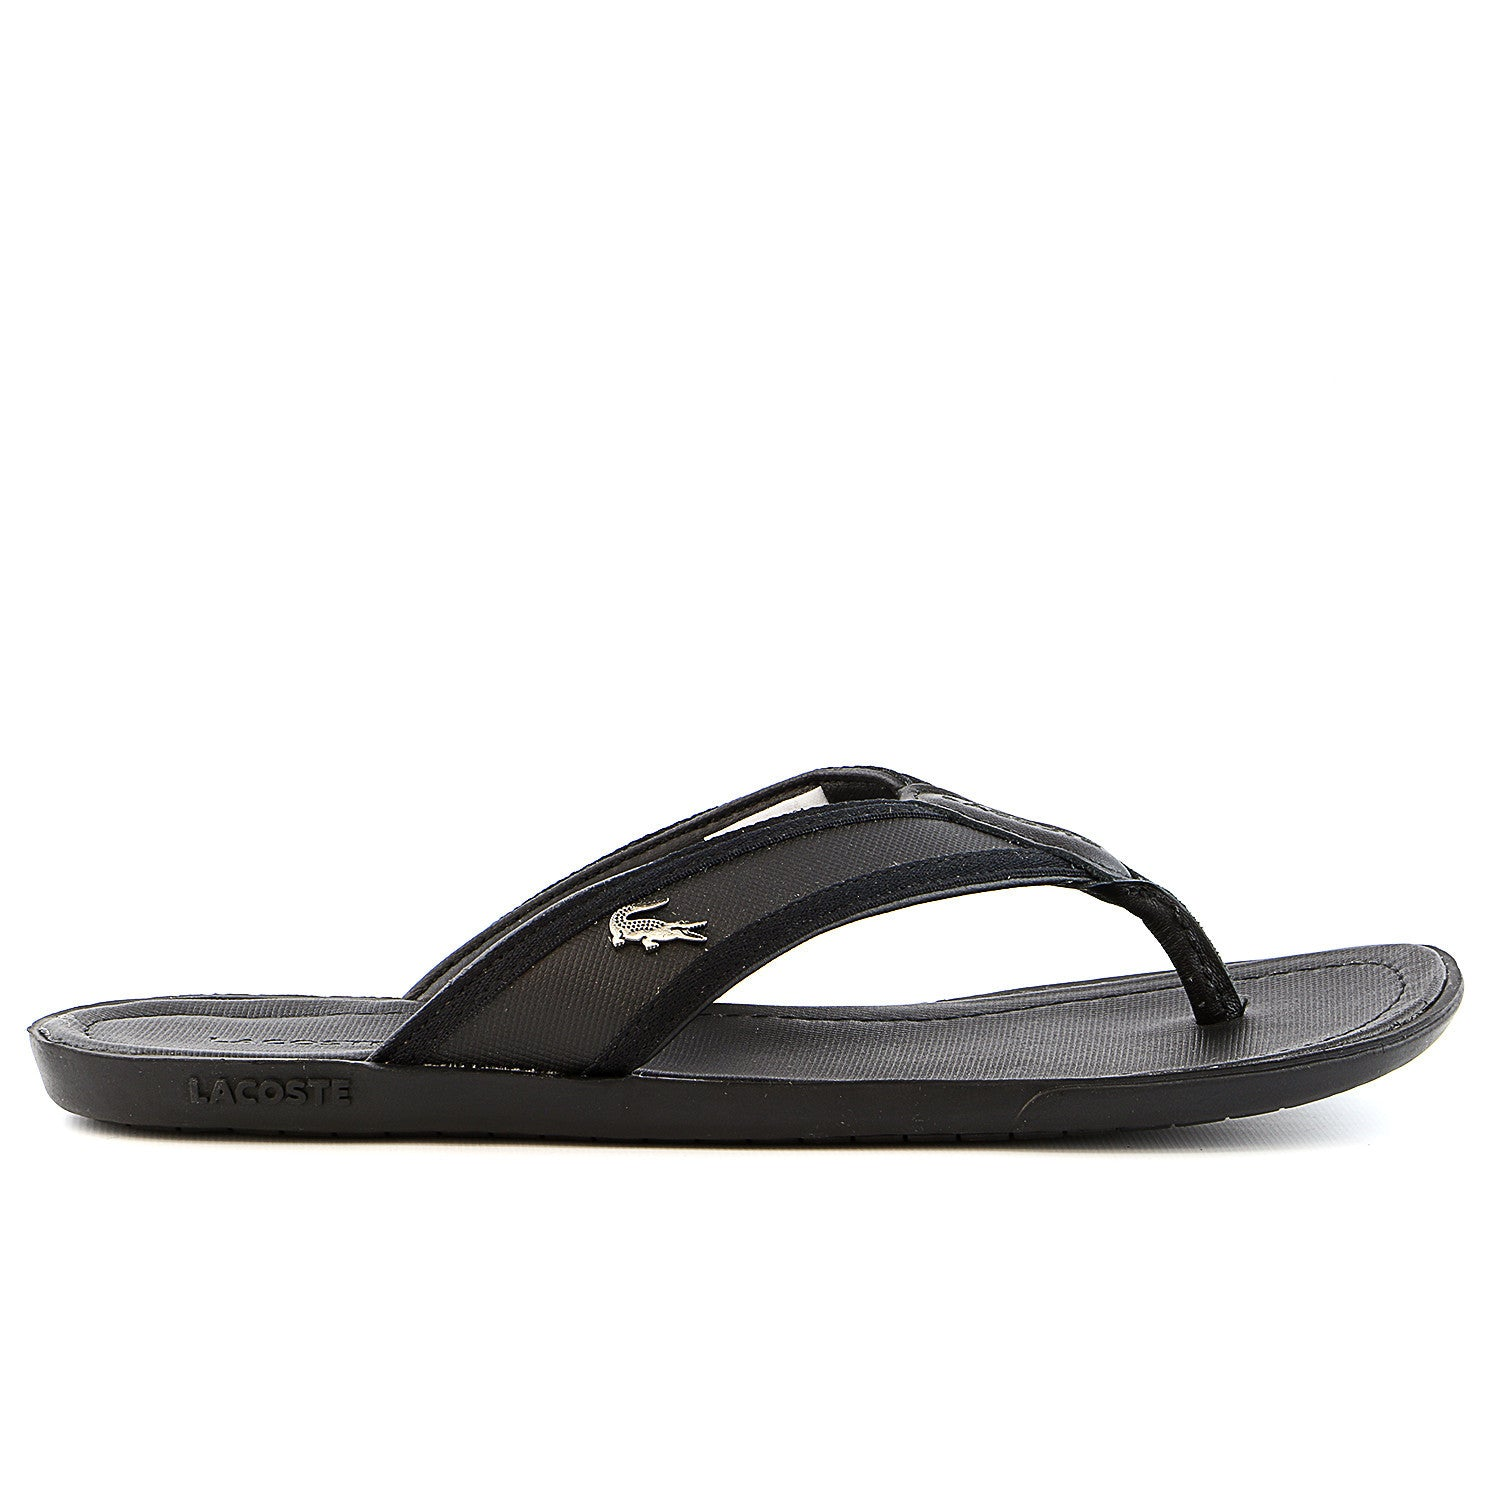 d34214fb01dc82 Lacoste Carros 6 Leather Flip Flop Thong Sandal - Black - Mens ...